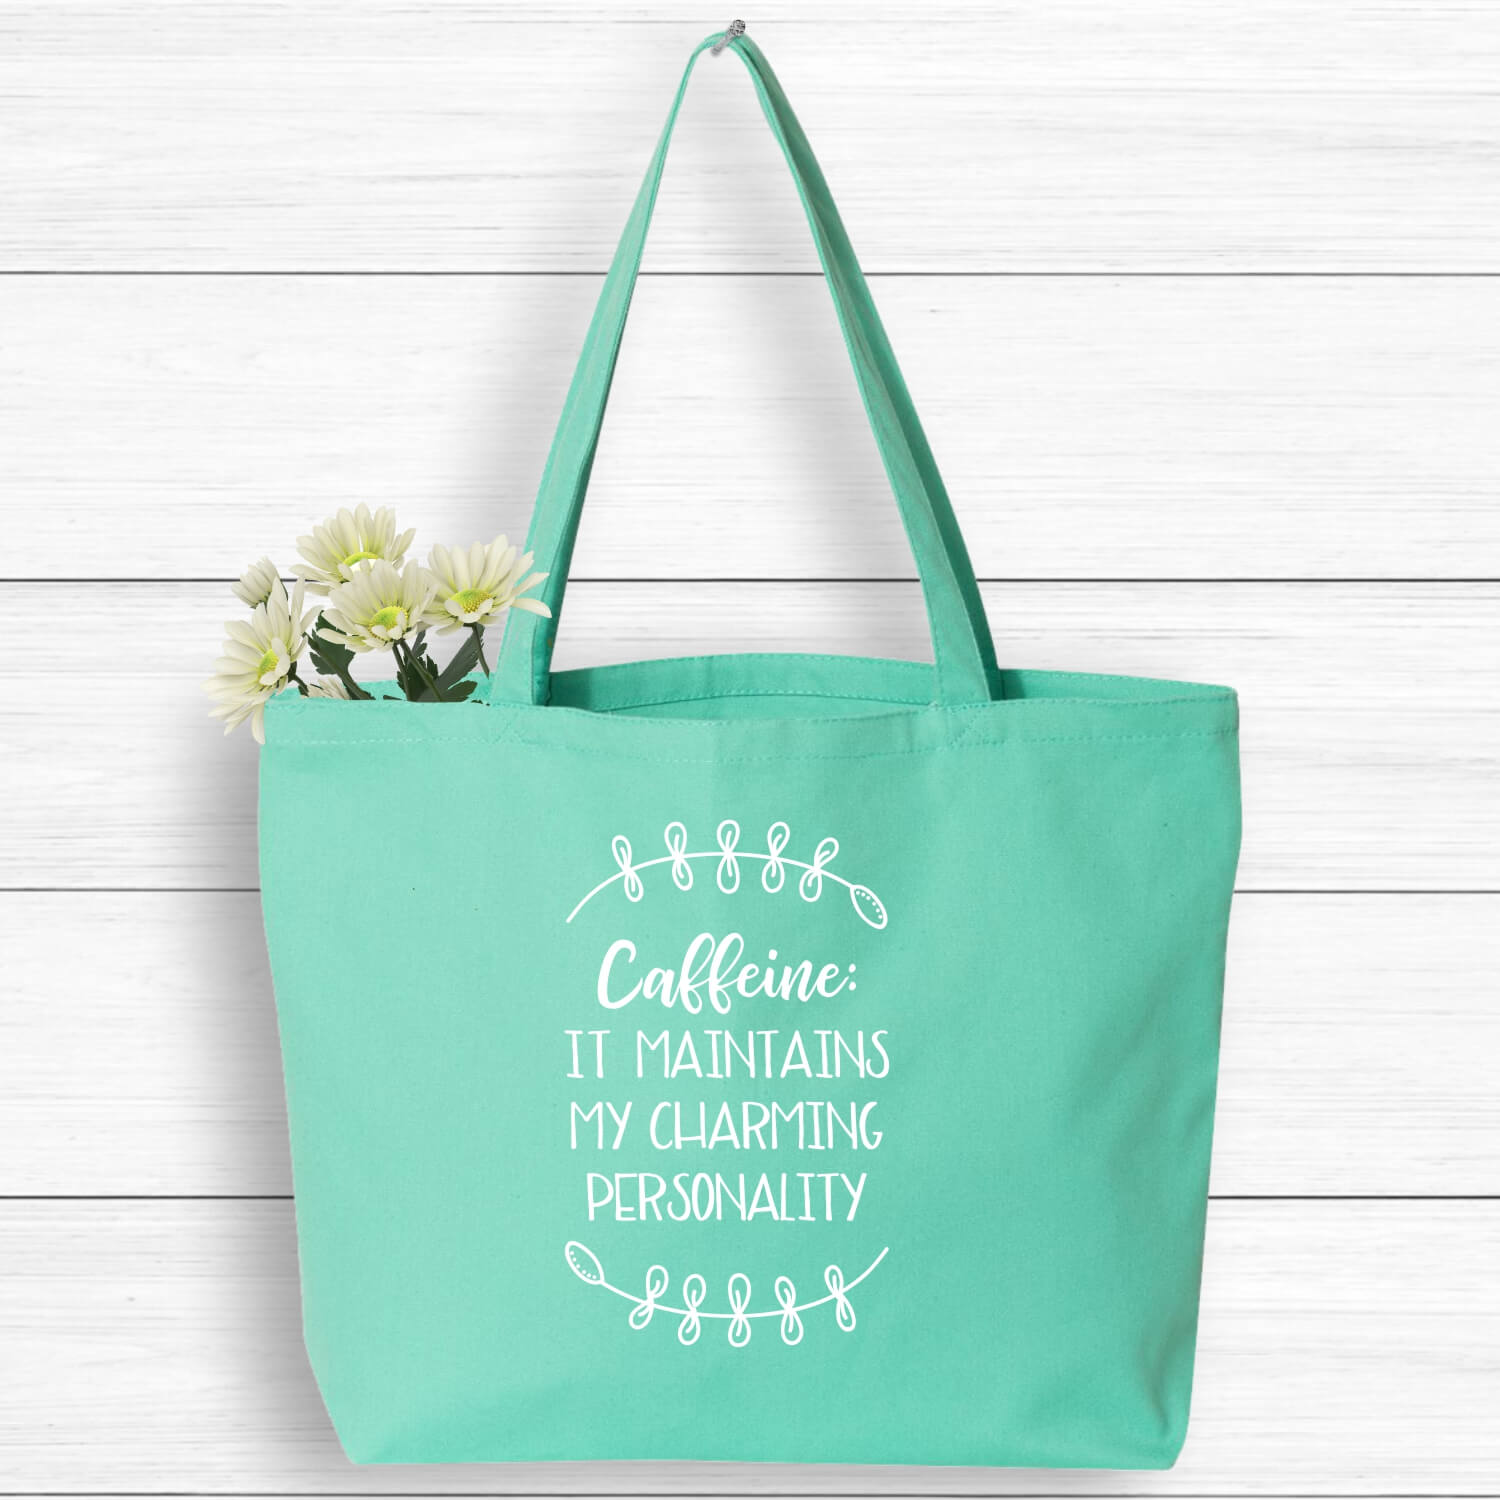 Caffeine-Charming-Personality-Market-Tote